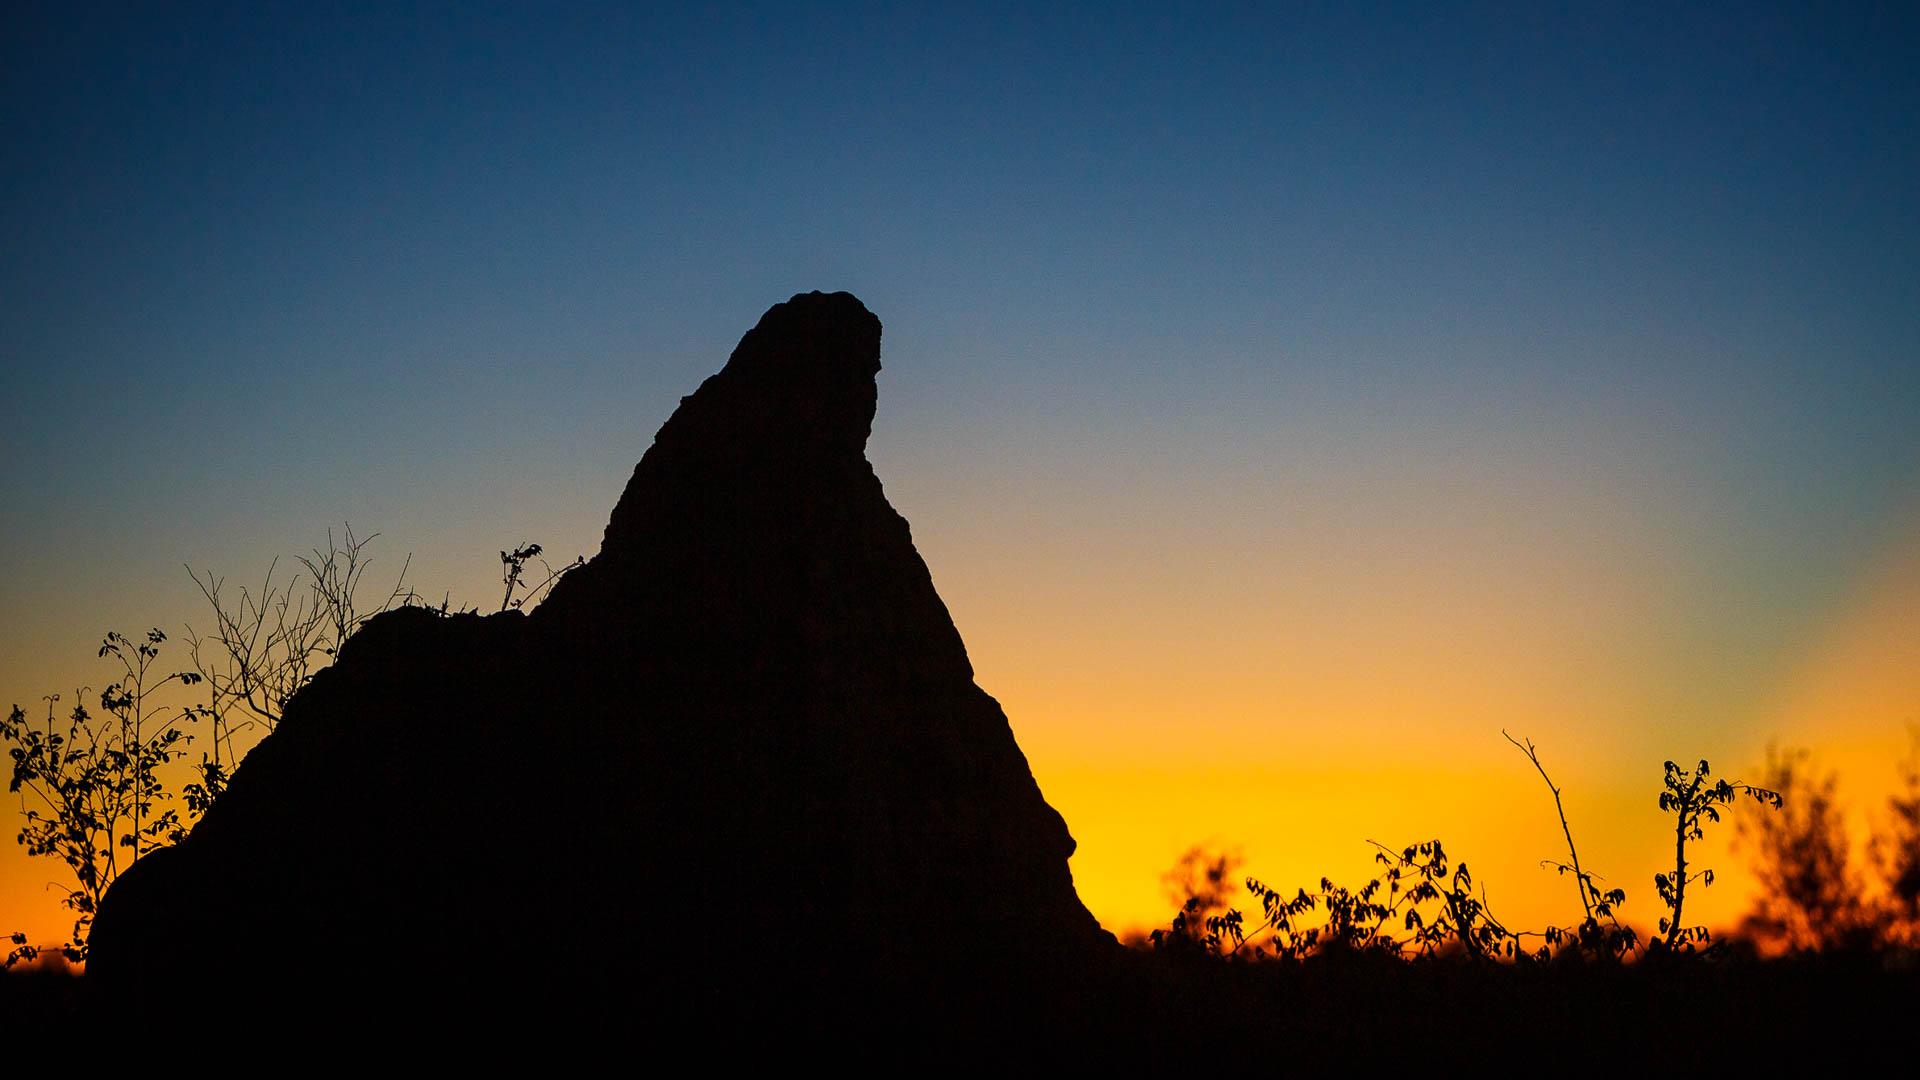 Tanda Tula - termite mound at sunset in South Africa